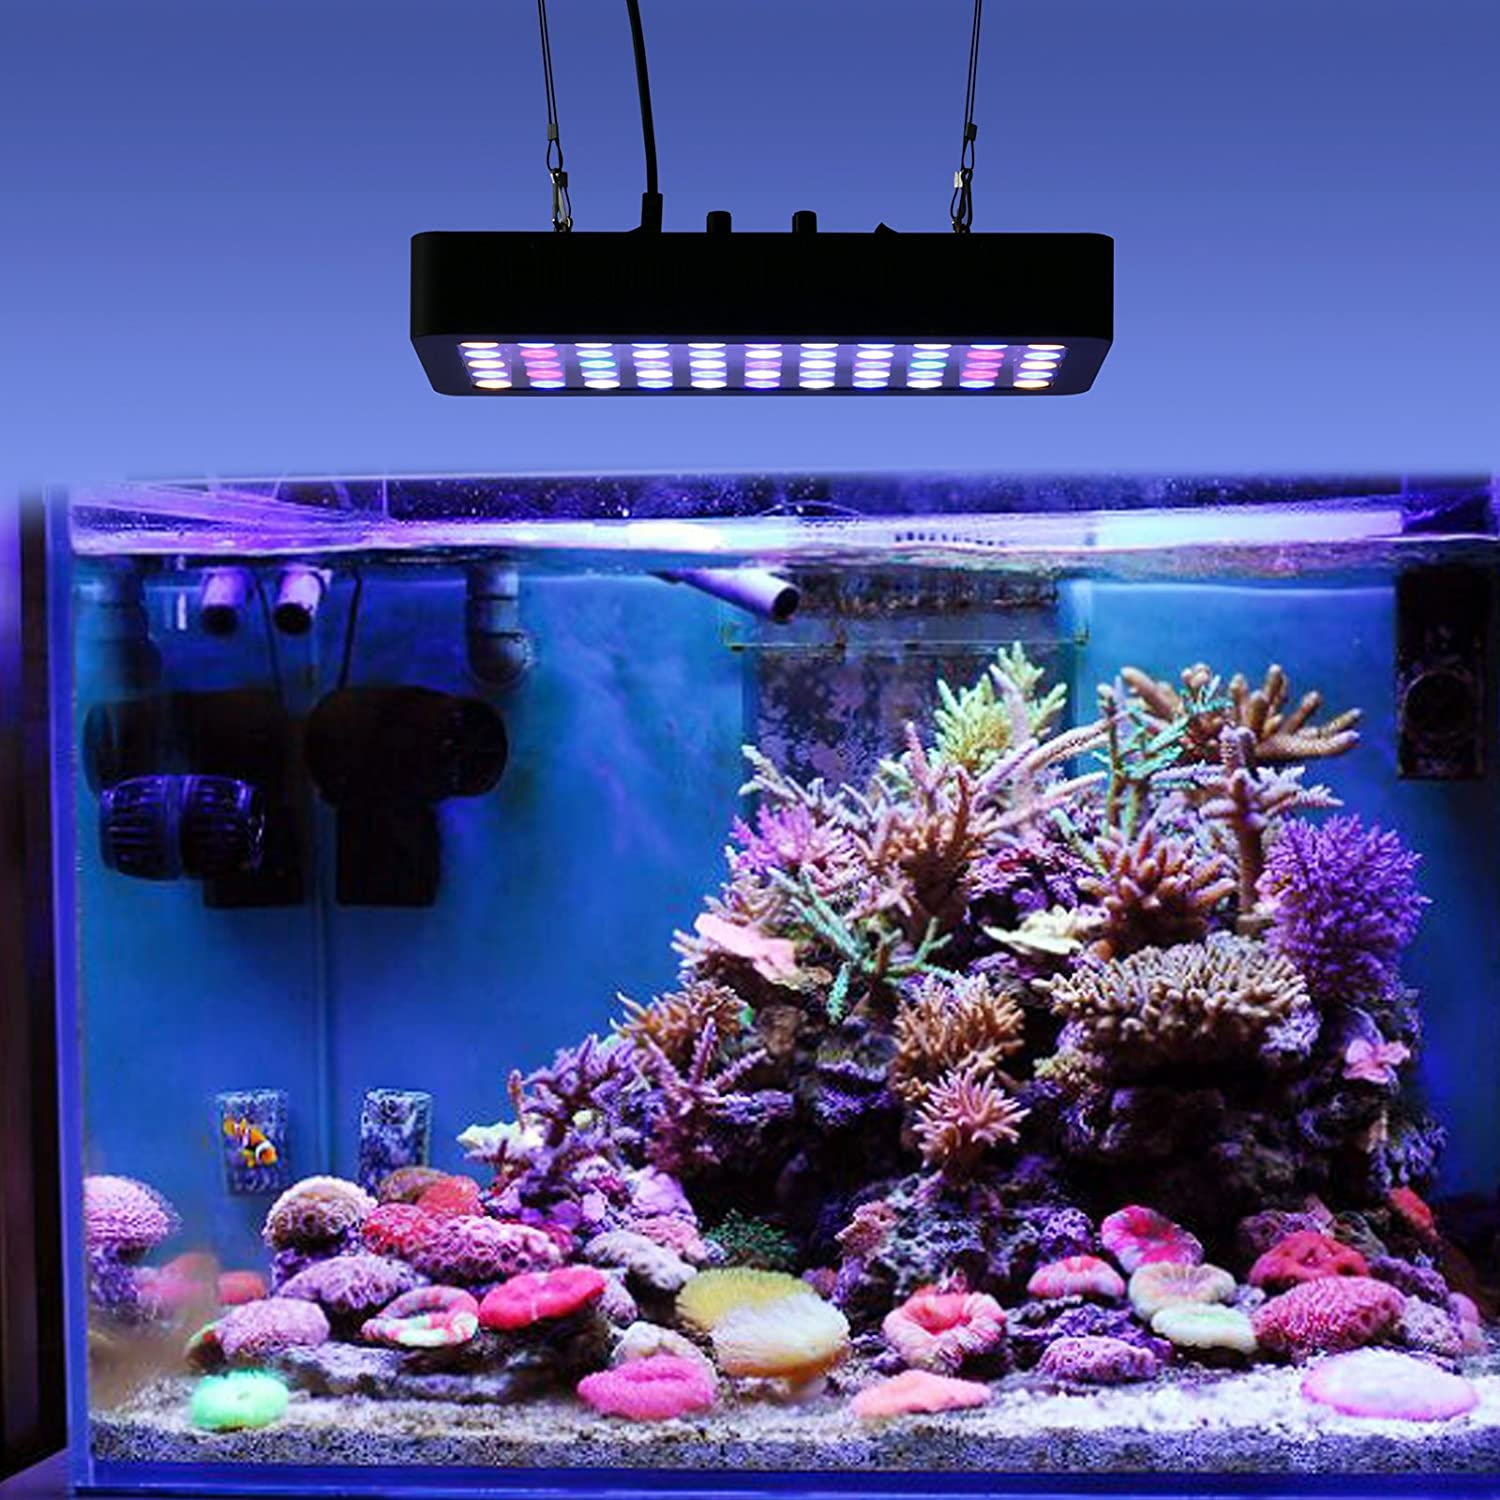 Nano led aquarium fish tank lighting - Roleadro Led Aquarium Lights Dimmable 165w Suitable For Fish Tank Lighting Aquariums Fish Reef Coral Water Plants Amazon Co Uk Kitchen Home